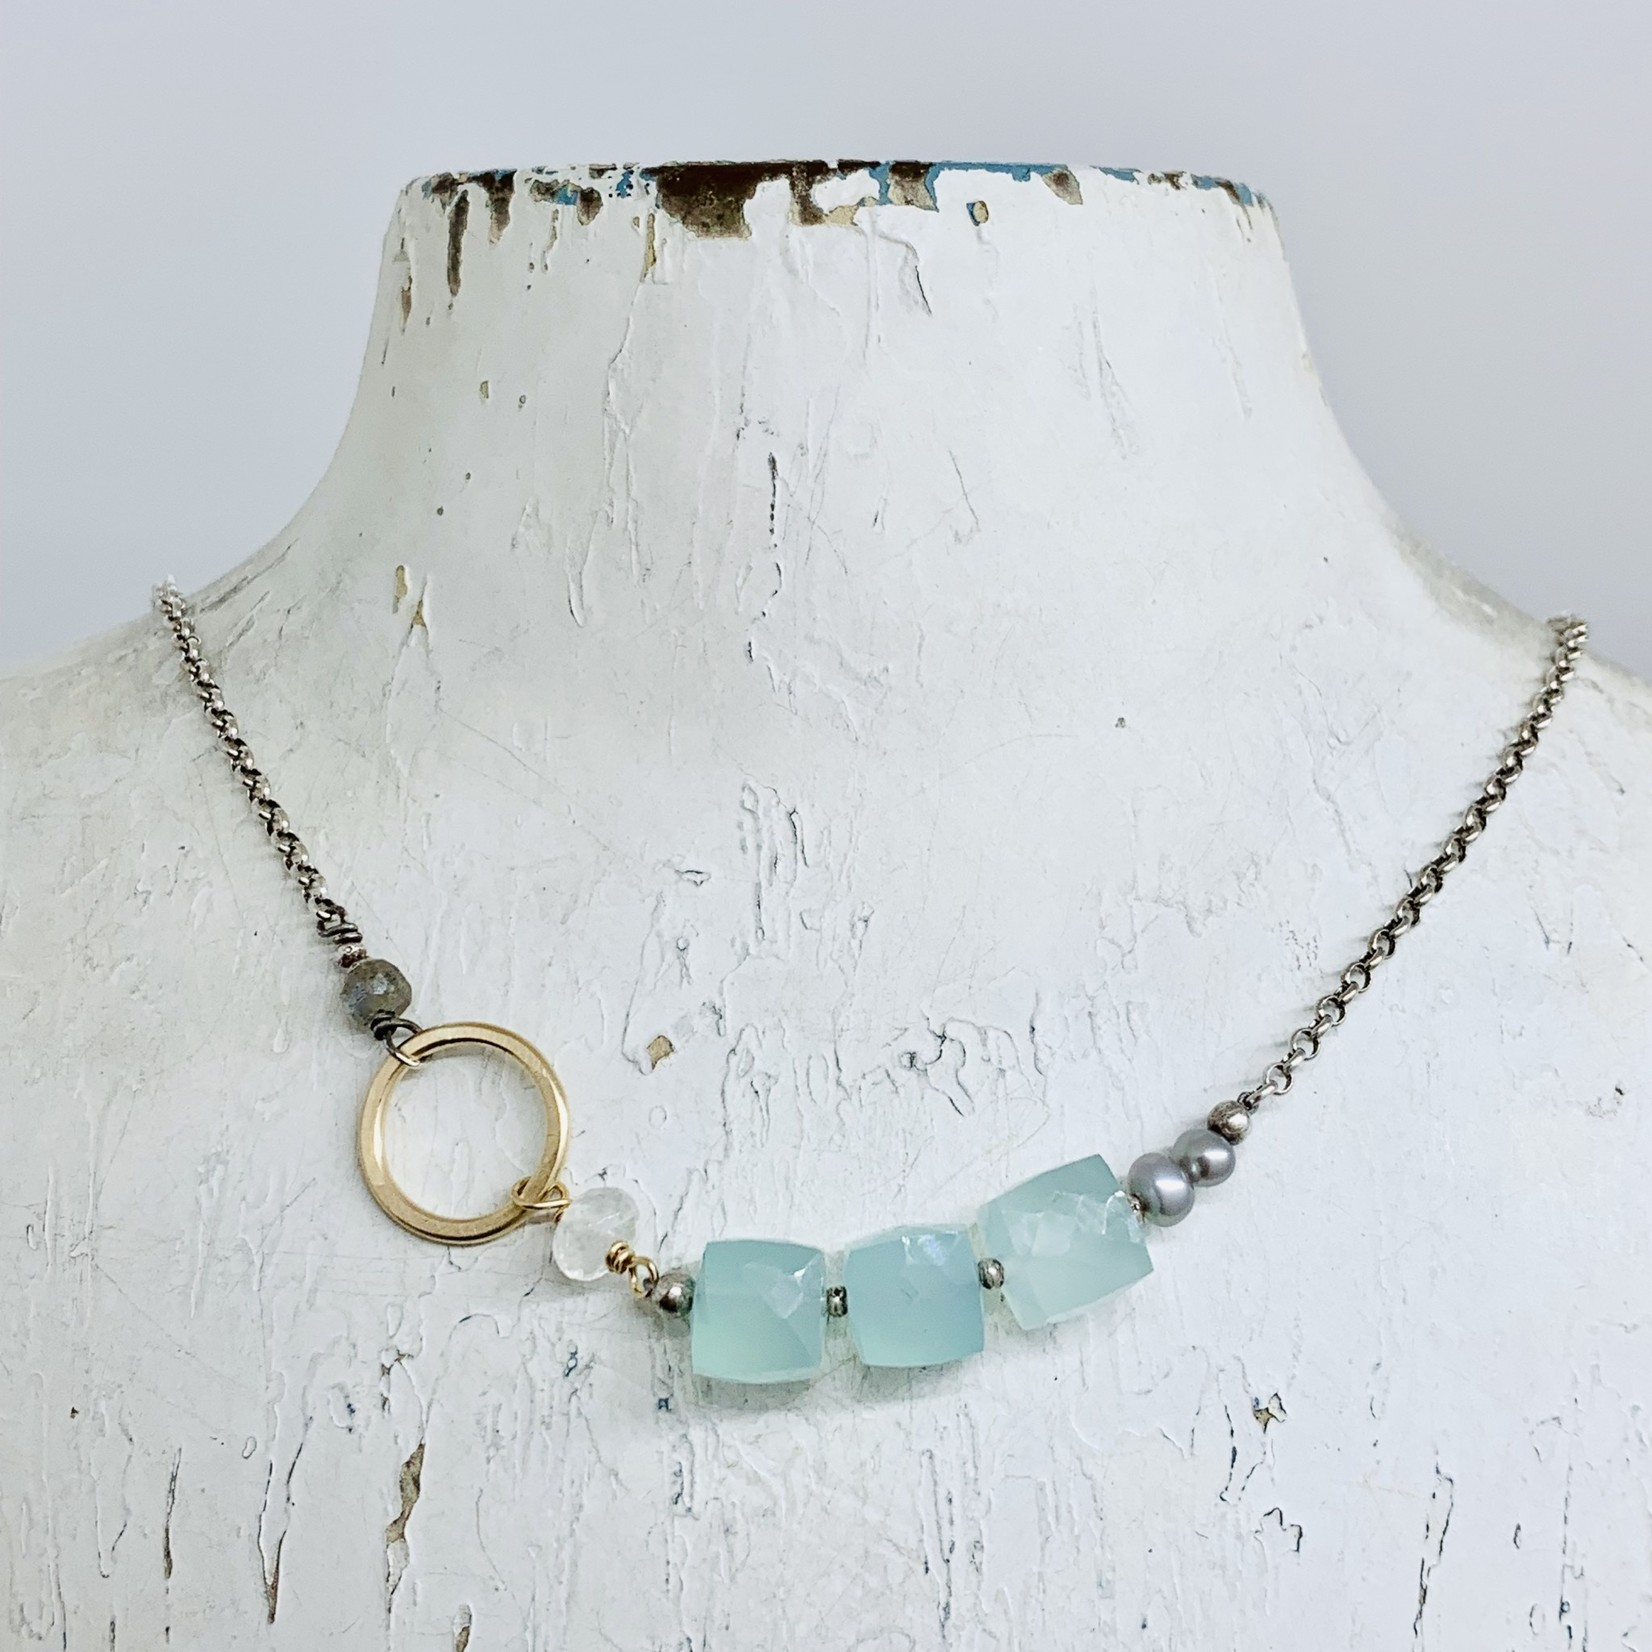 Handmade necklace with aqua chalcedony cube, 14kt gf circle and grey pearl on oxidized sterling chain